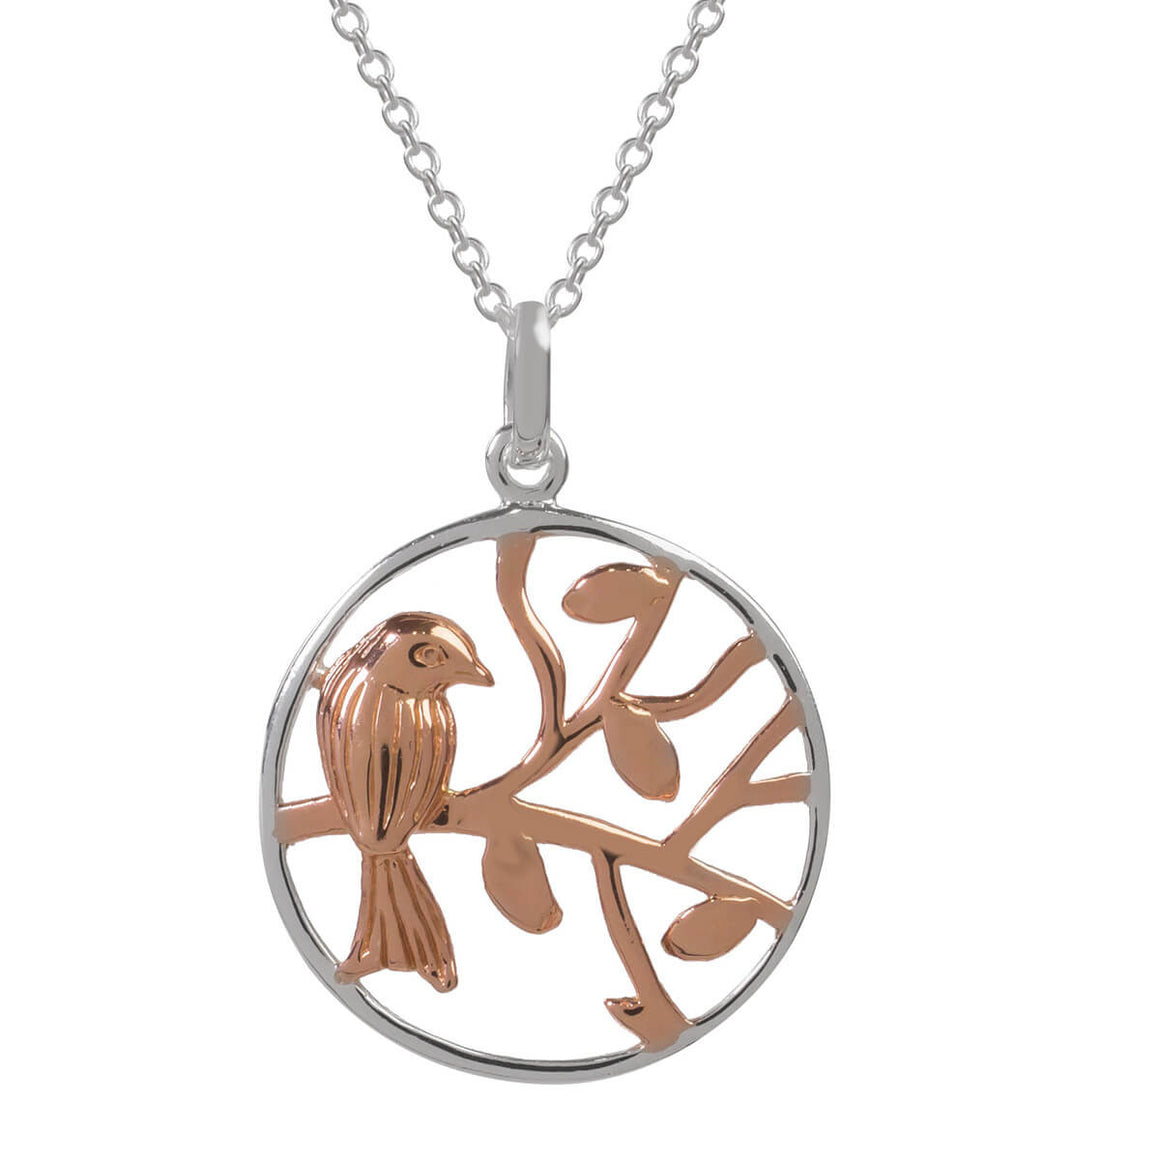 Sophie Oliver Valencia Bird In A Tree Necklace